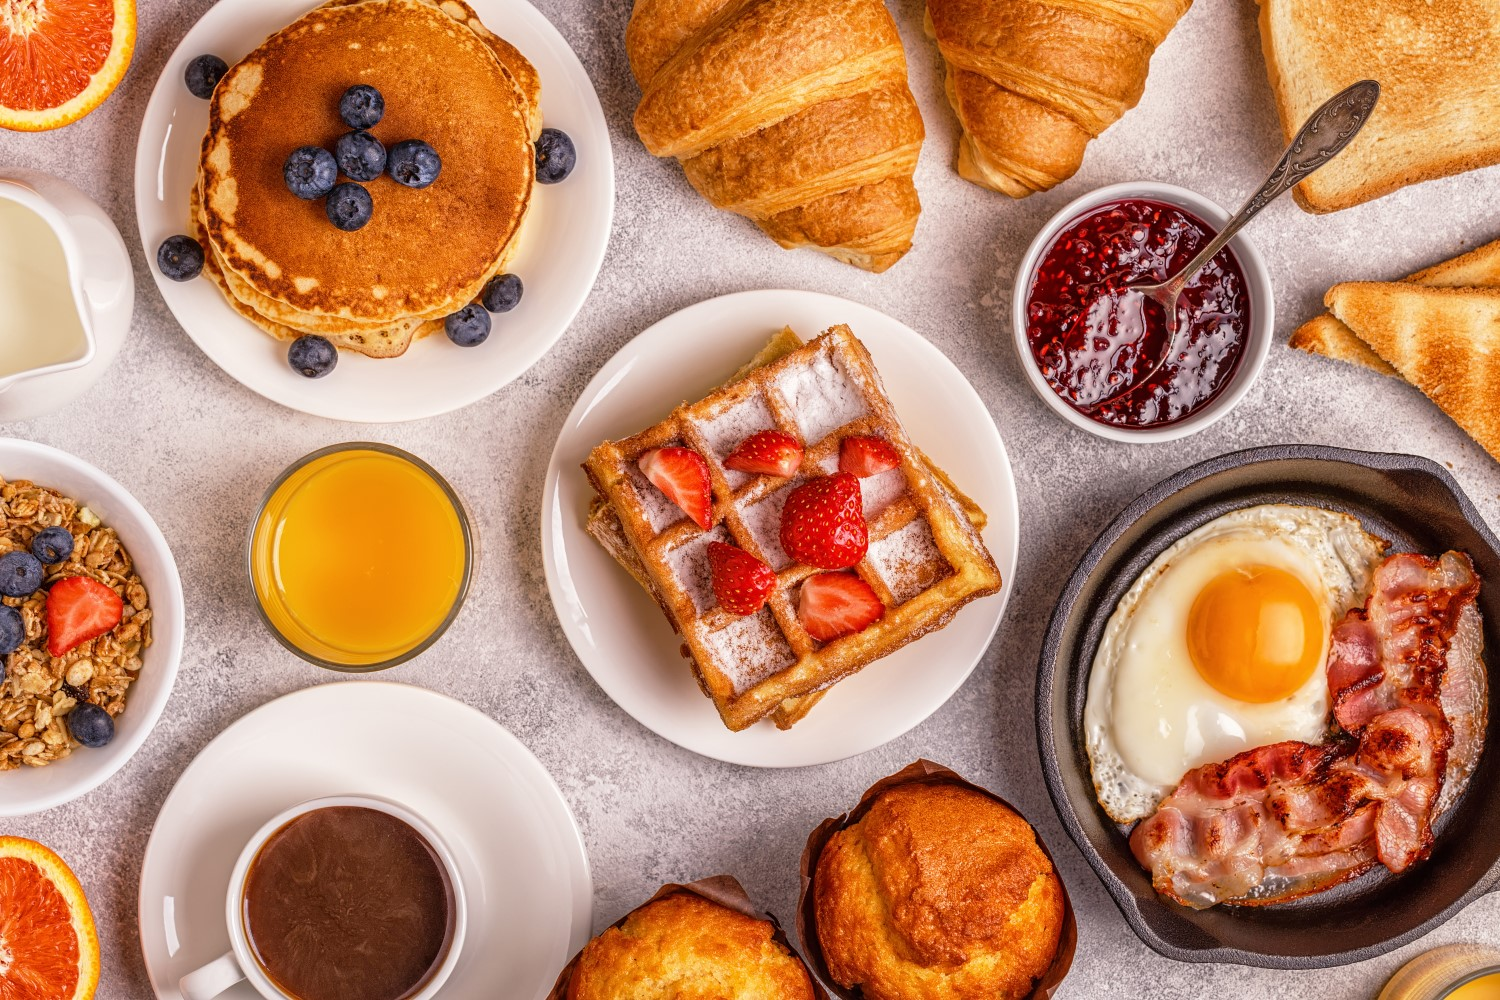 unique restaurant promotion ideas: offer brunch for a special price